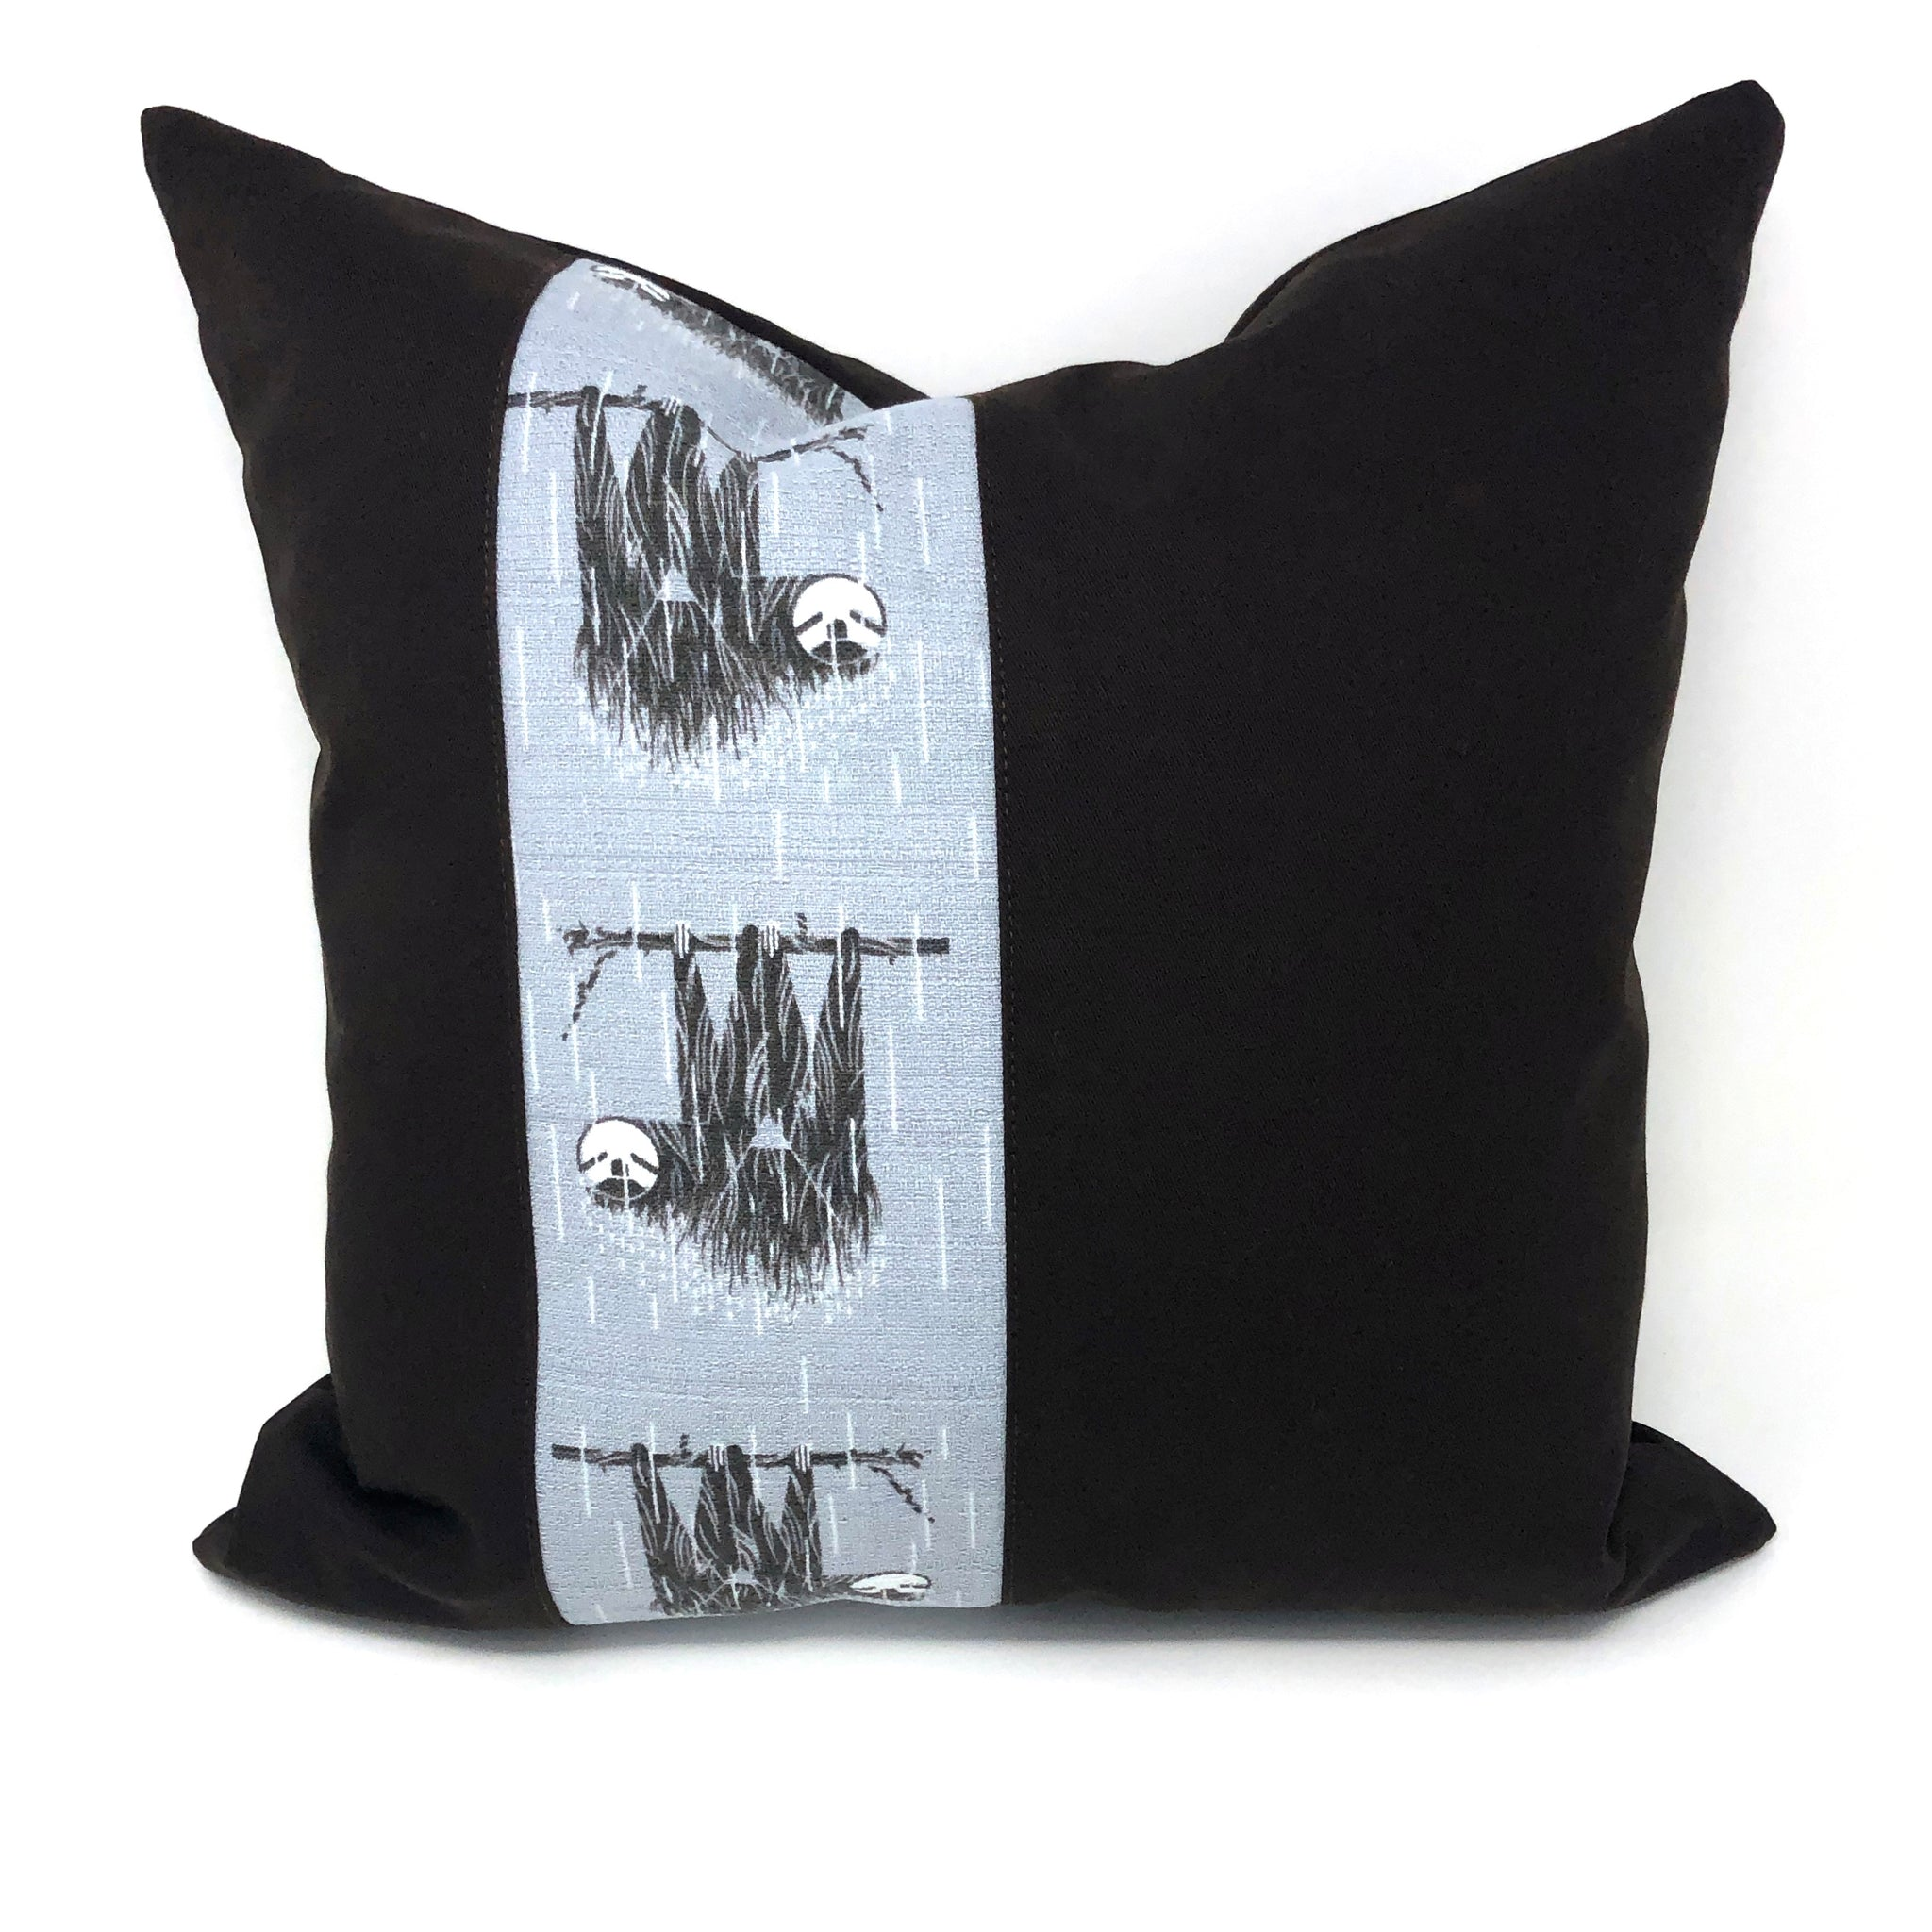 Throw Pillow Cover Charley Harper Barkcloth SLOTHS!